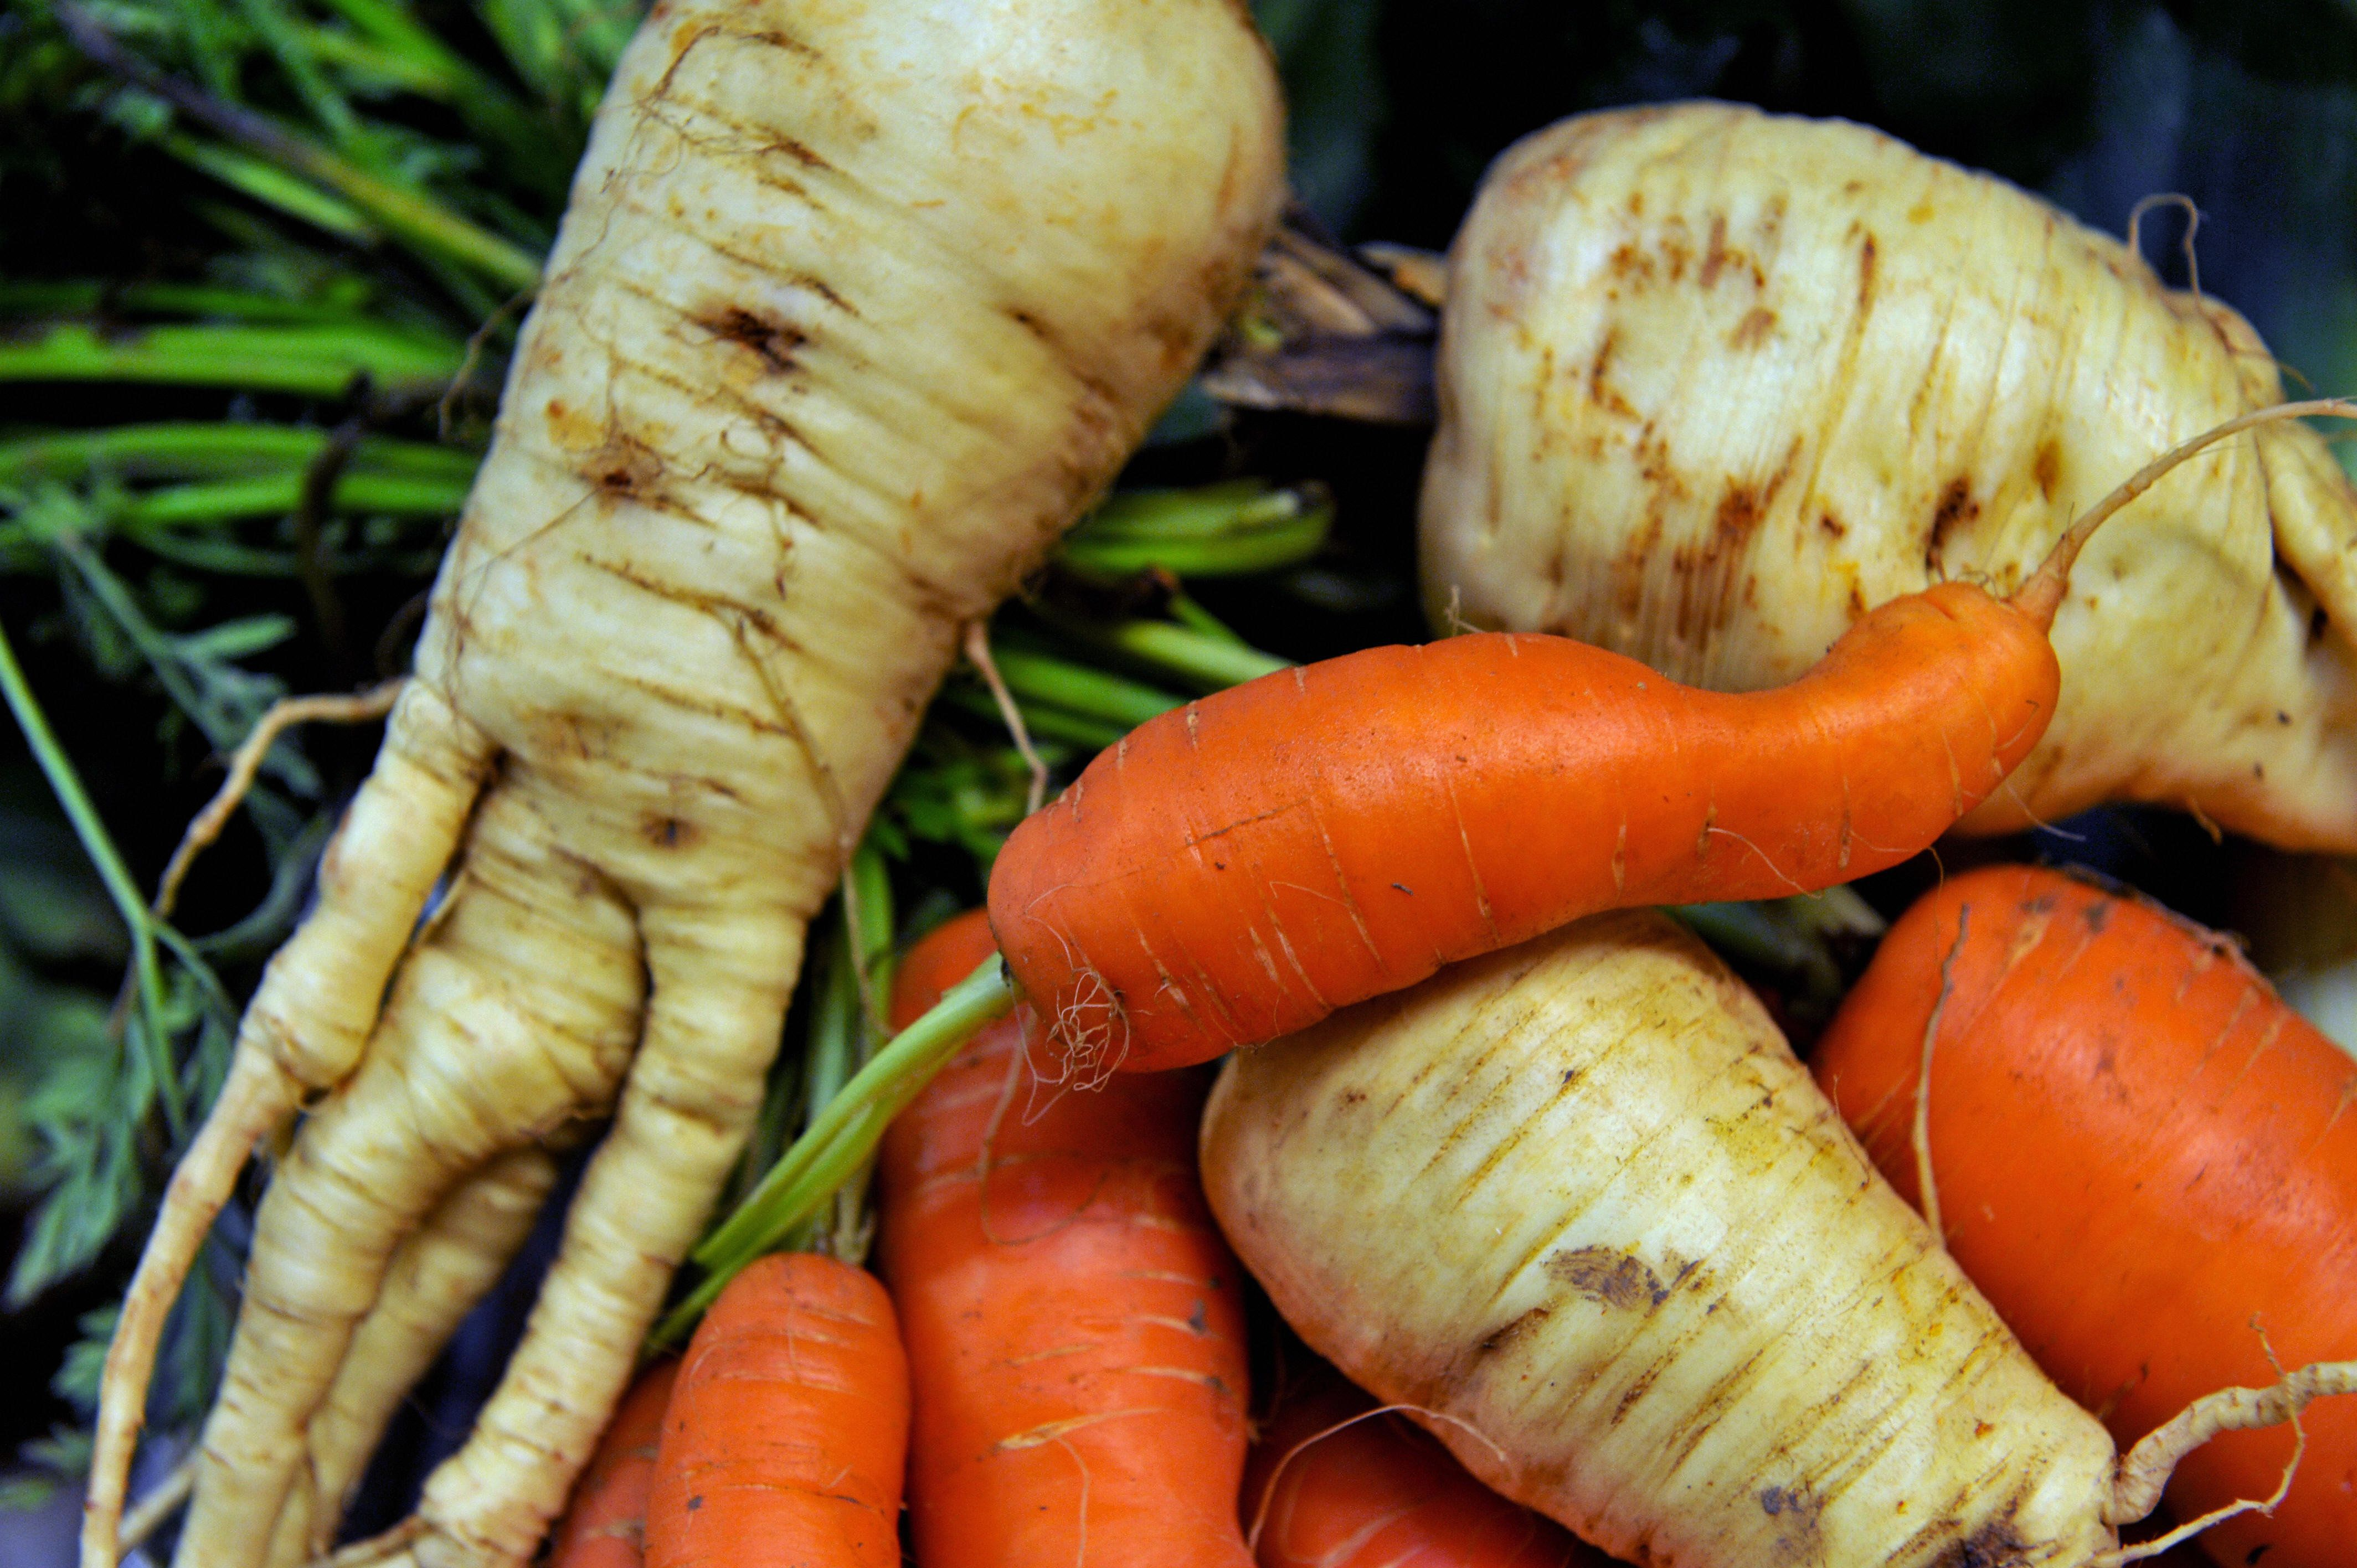 Sell Ugly Fruit And Veg To Cut Food Waste, MPs Urge Supermarkets